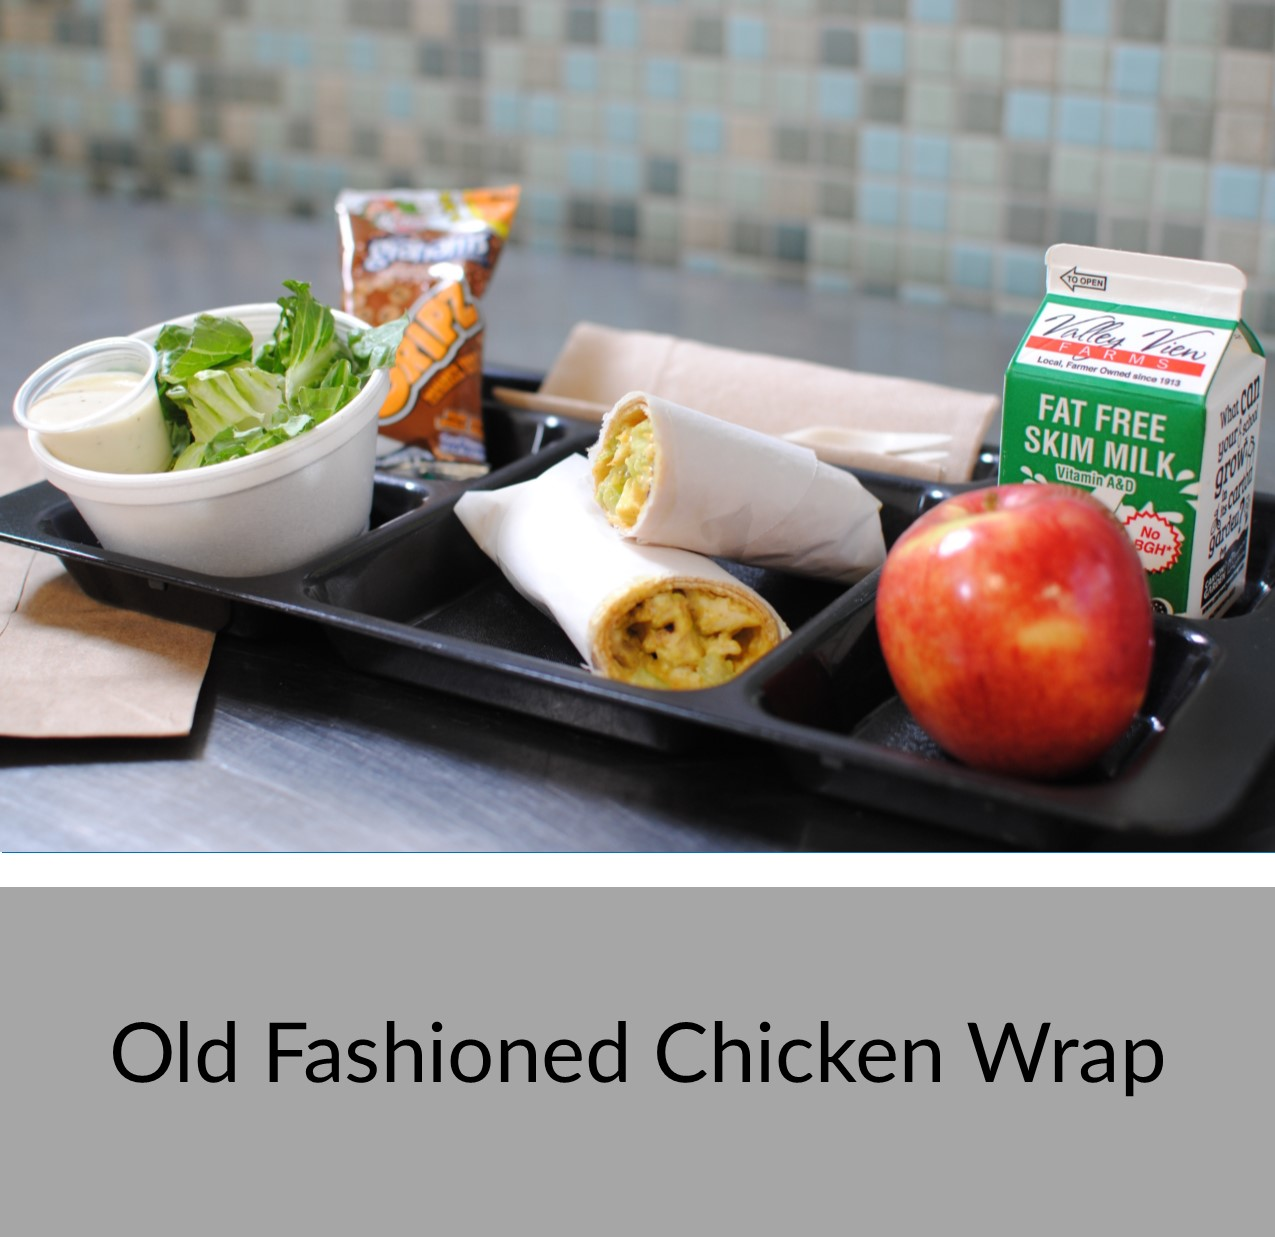 Old Fashioned Chicken Wrap